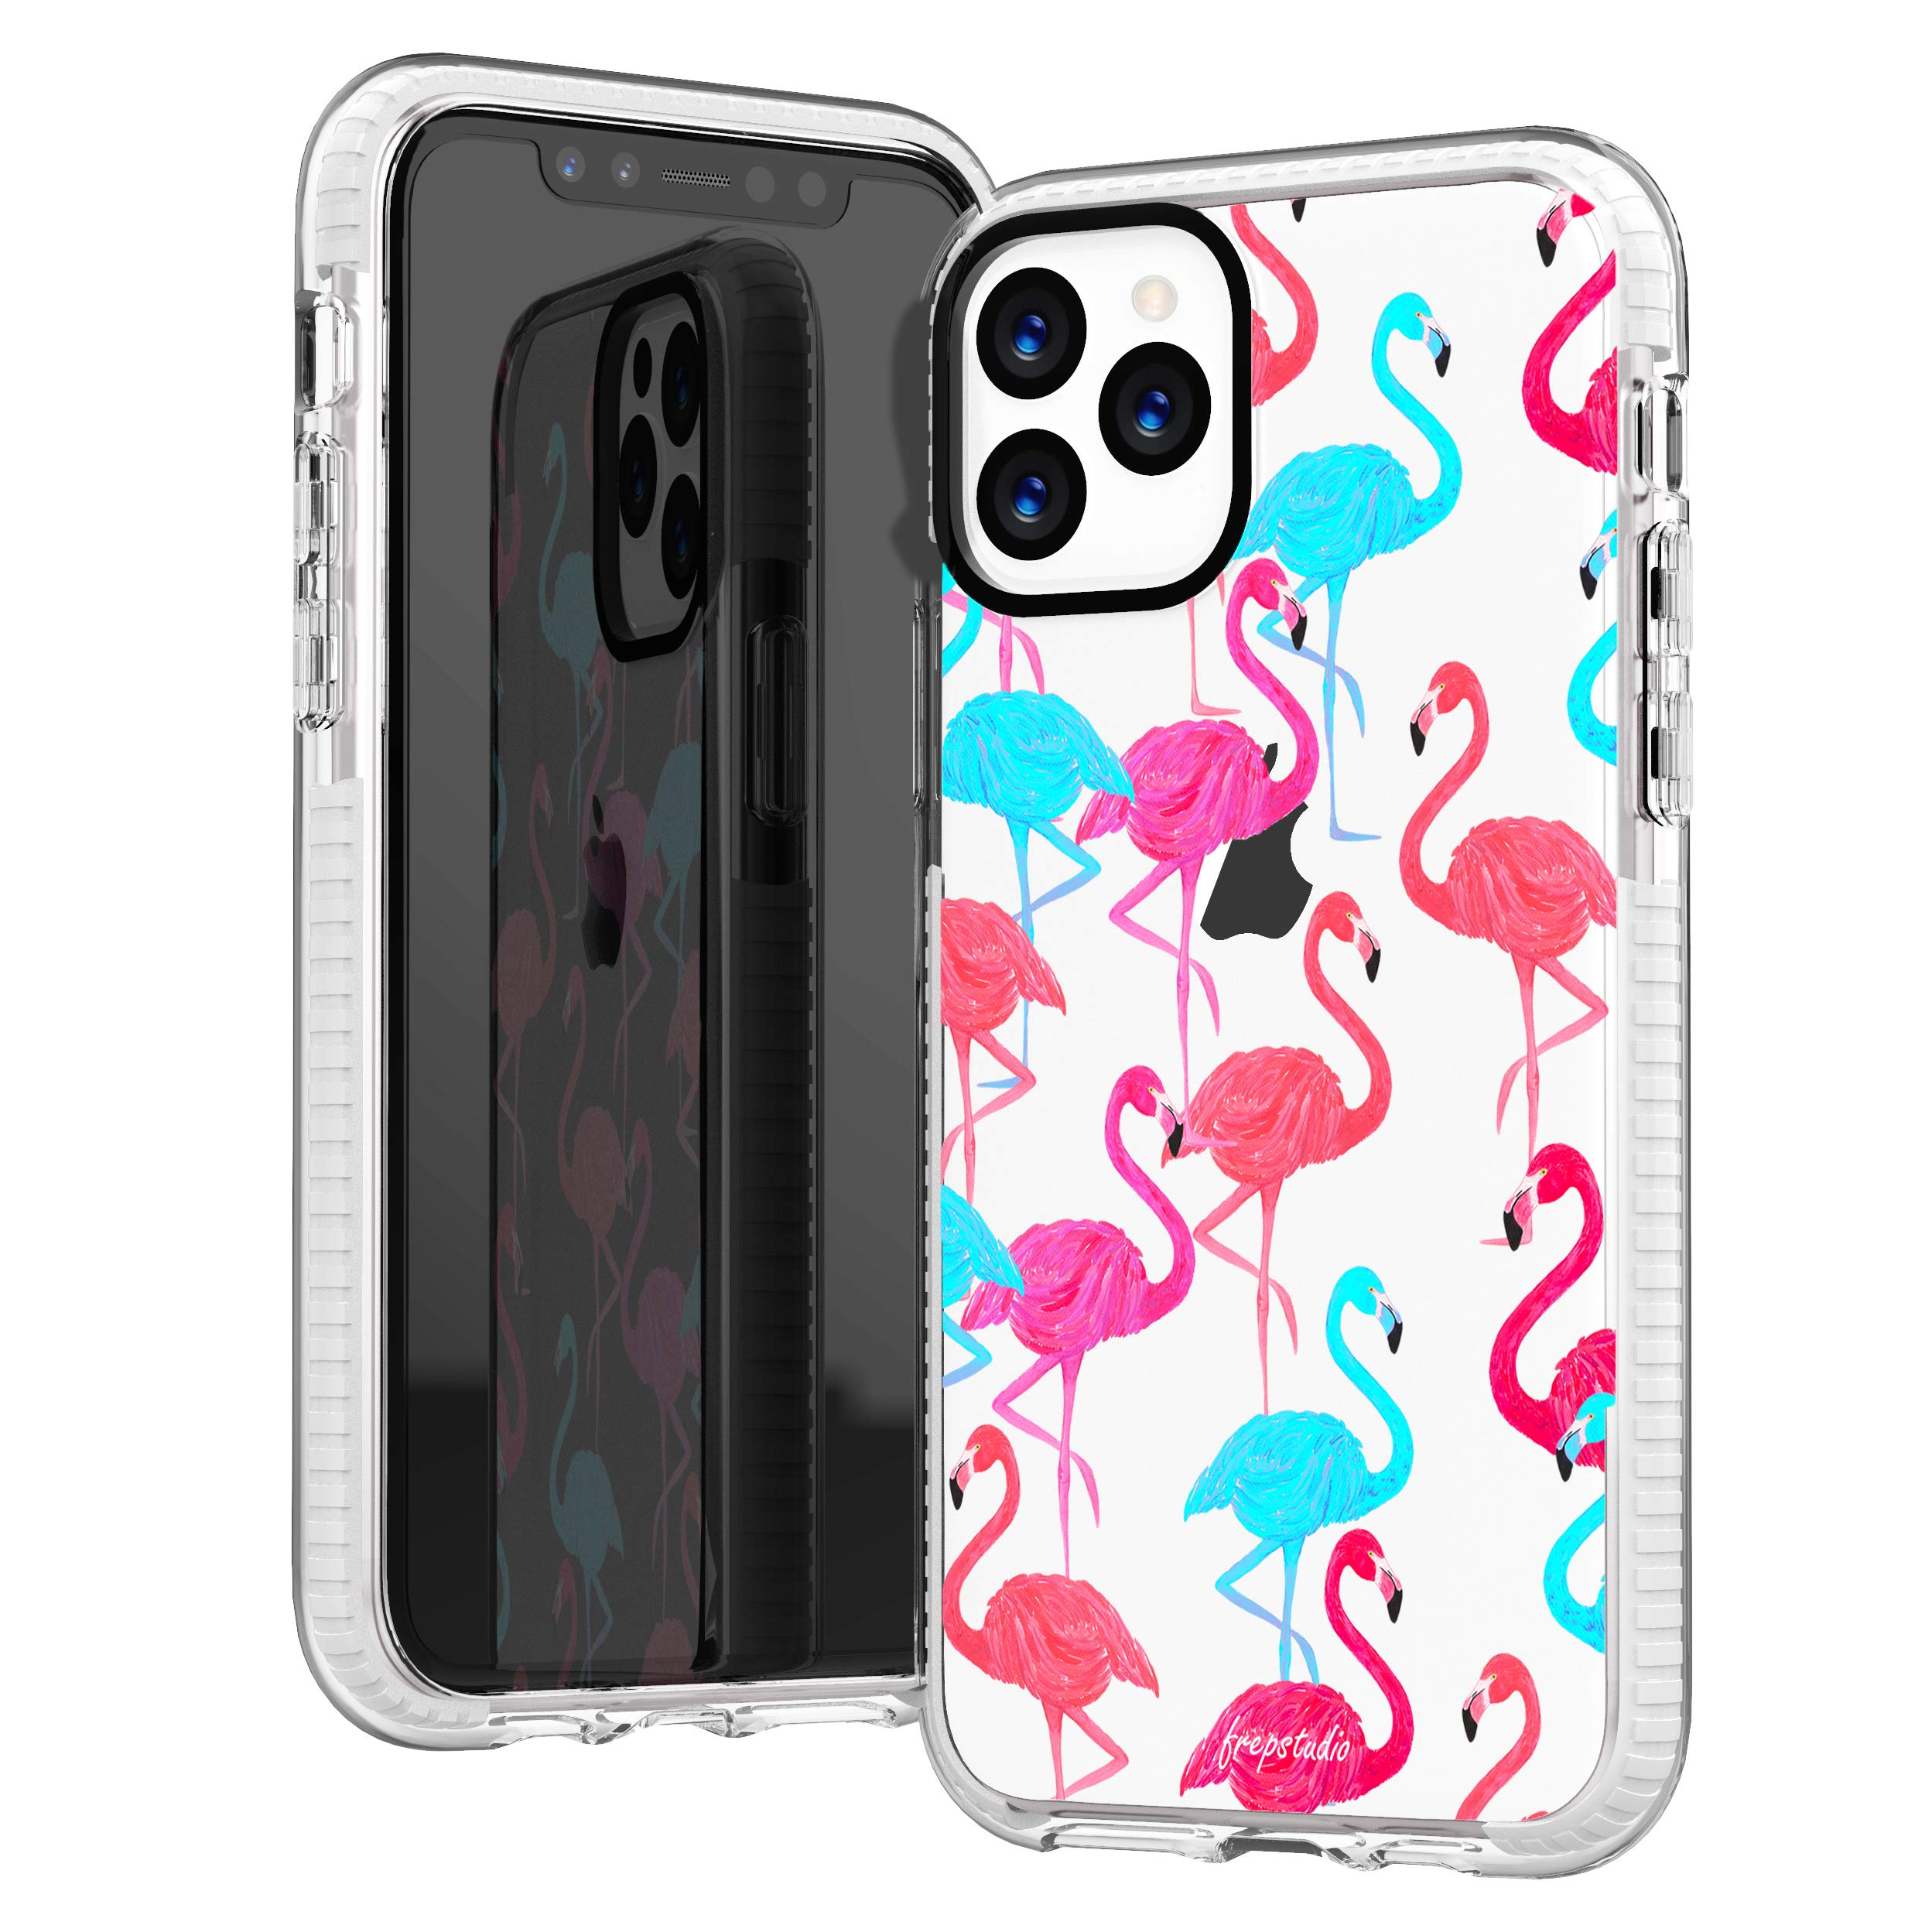 iPhone 11 Pro Clear Case,Aloha Summer Cute Tropical Pink Trendy Flamingos Birds Hawaii Beach Girls Women Cute Colorful Trendy Hipster Soft Protective Clear Design Case Compatible for iPhone 11 Pro